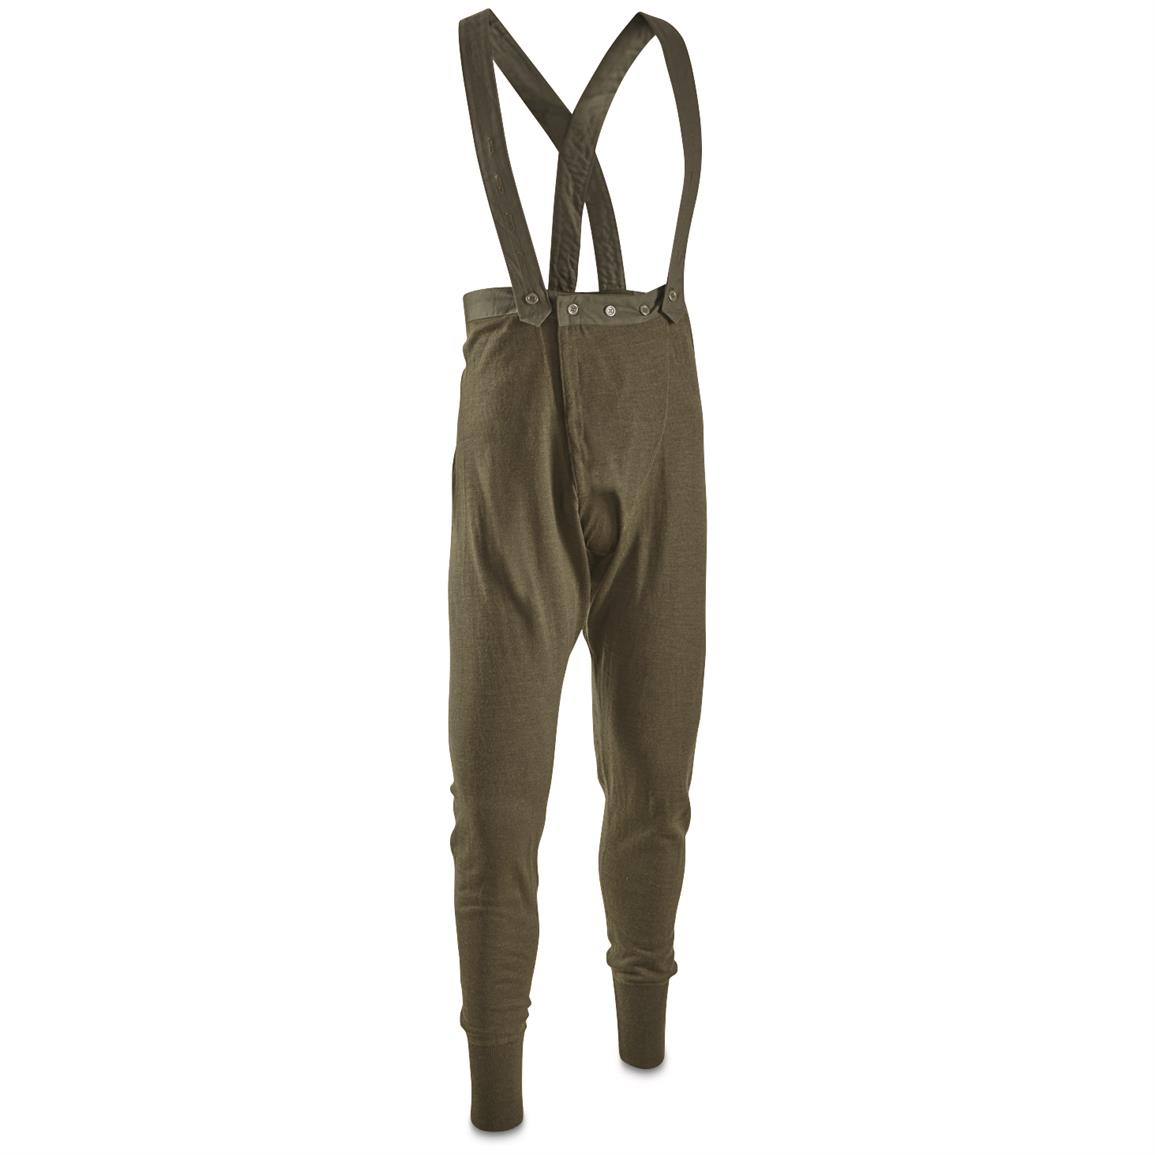 Swiss Military Issue Wool Long Johns with Suspenders, 2 Pack, New